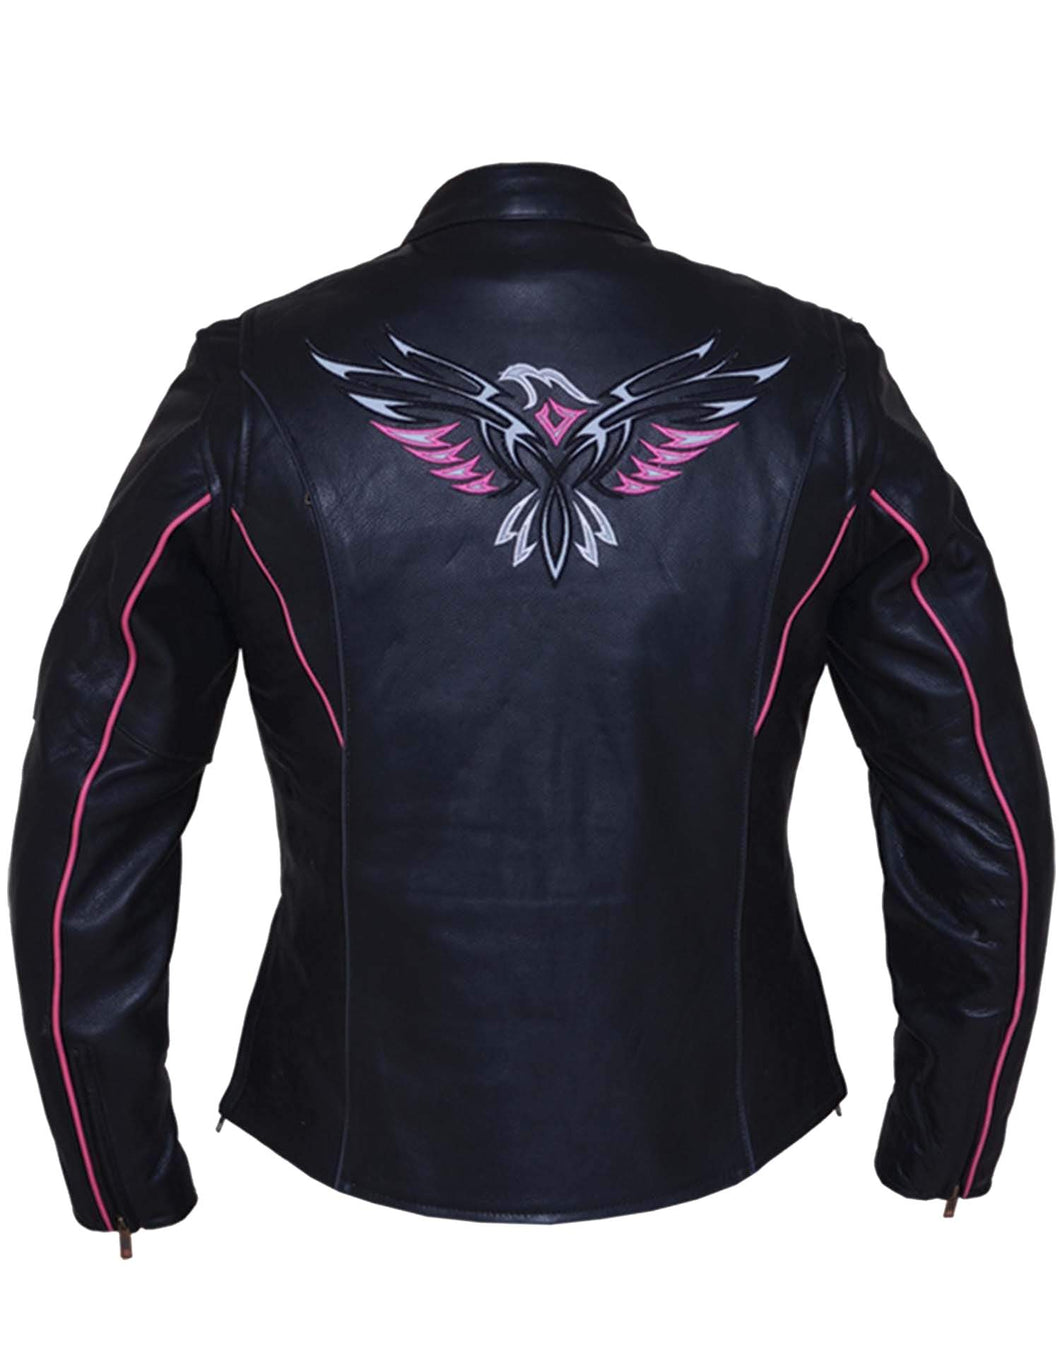 UNIK Ladies Premium Leather Jacket With Eagle Wings - Ghost Rider Leather